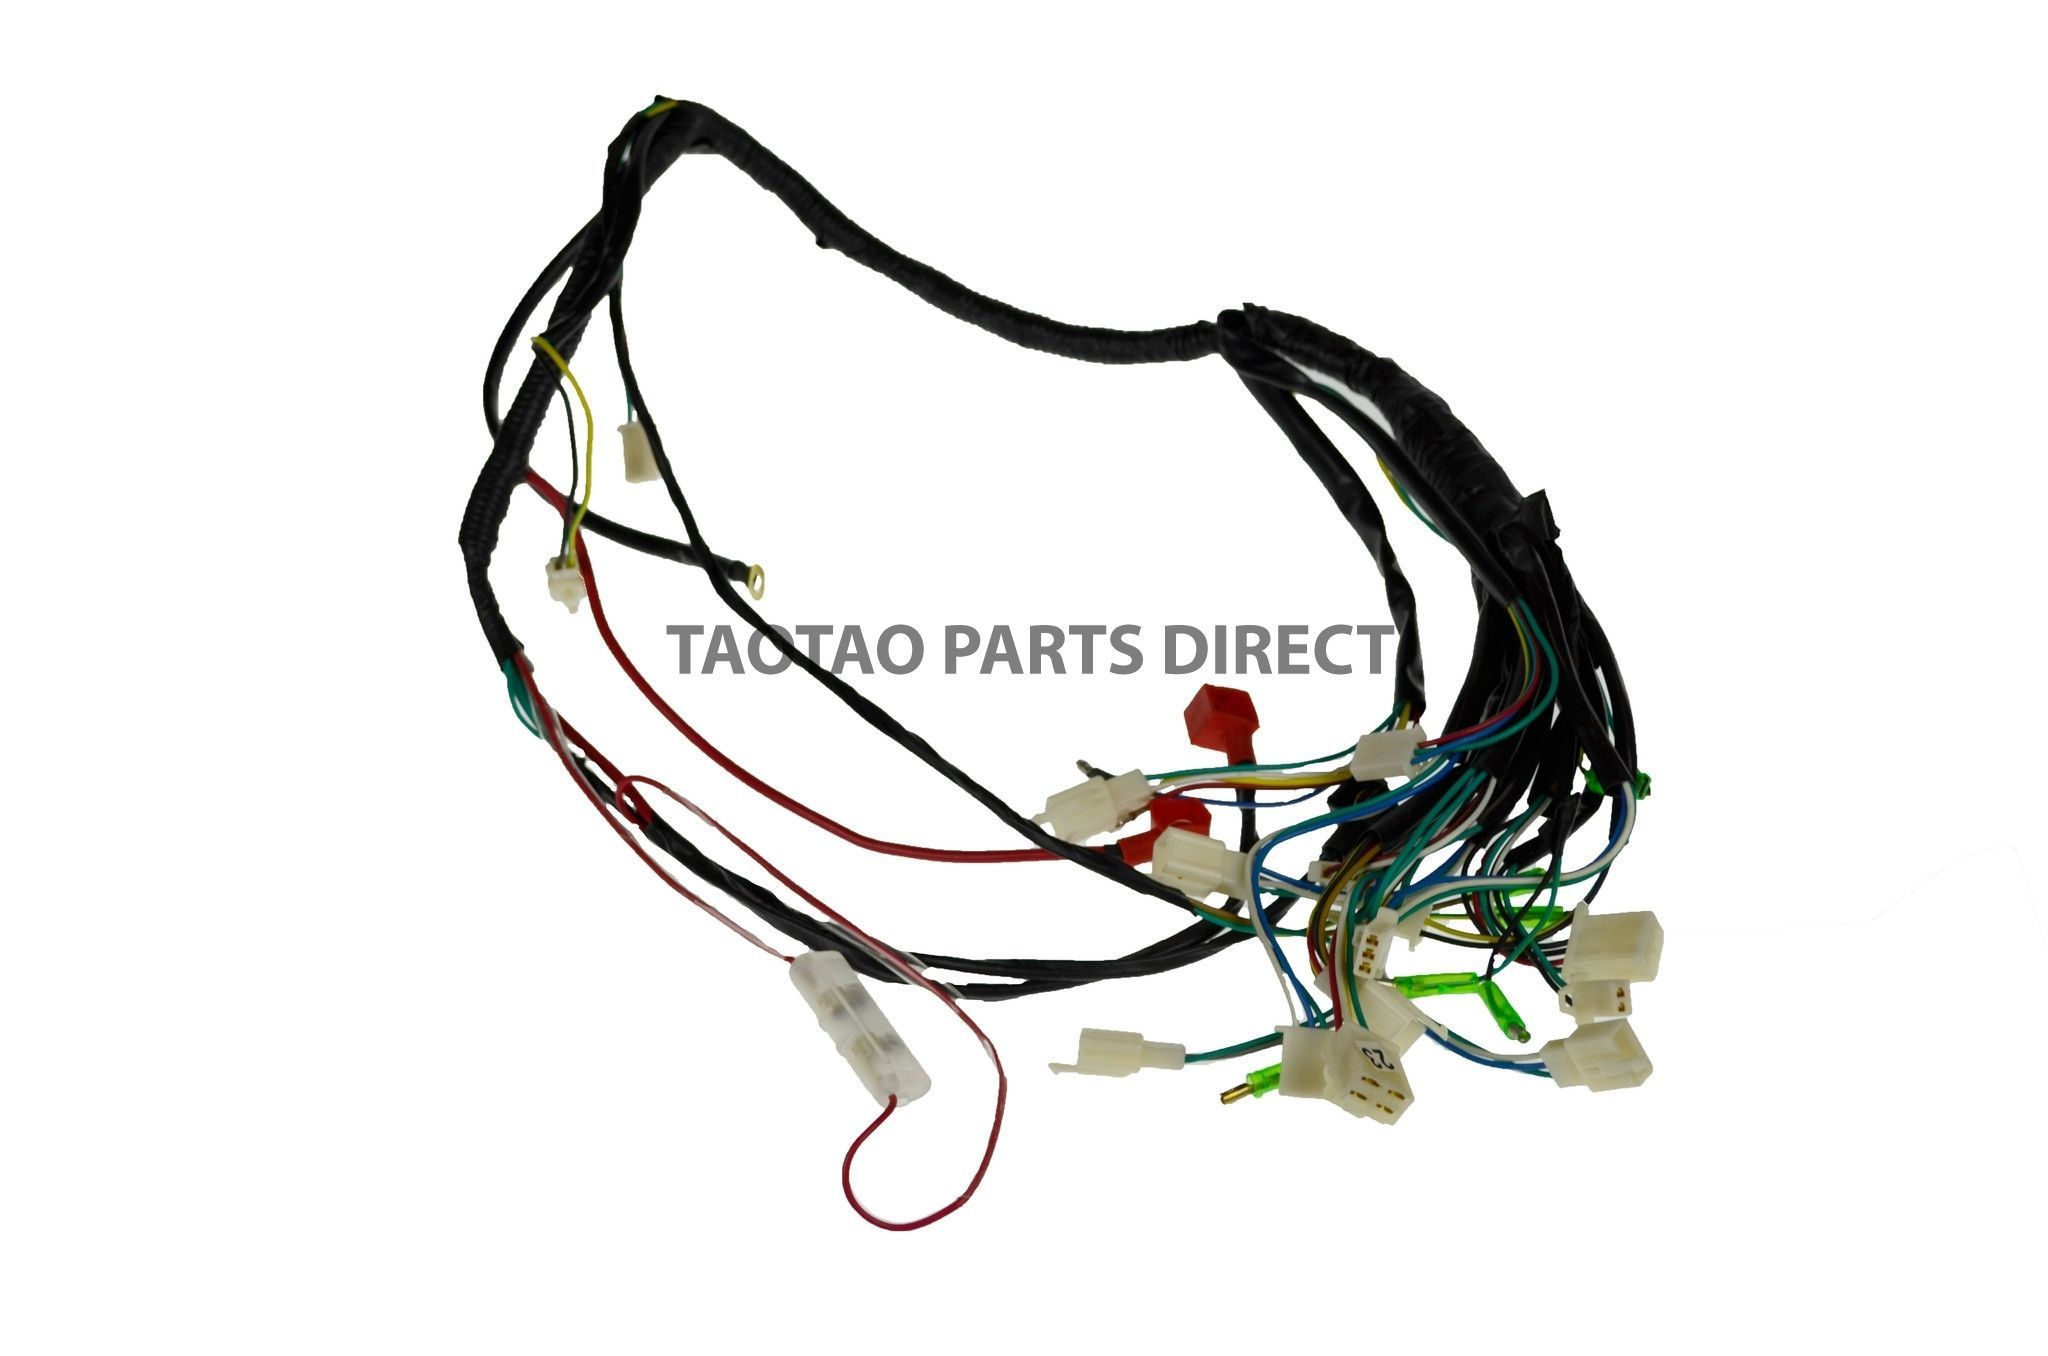 small resolution of furuno 30 meter signal cable assembly f 1622 1712 wire harnessing cable wire electronics gadgets